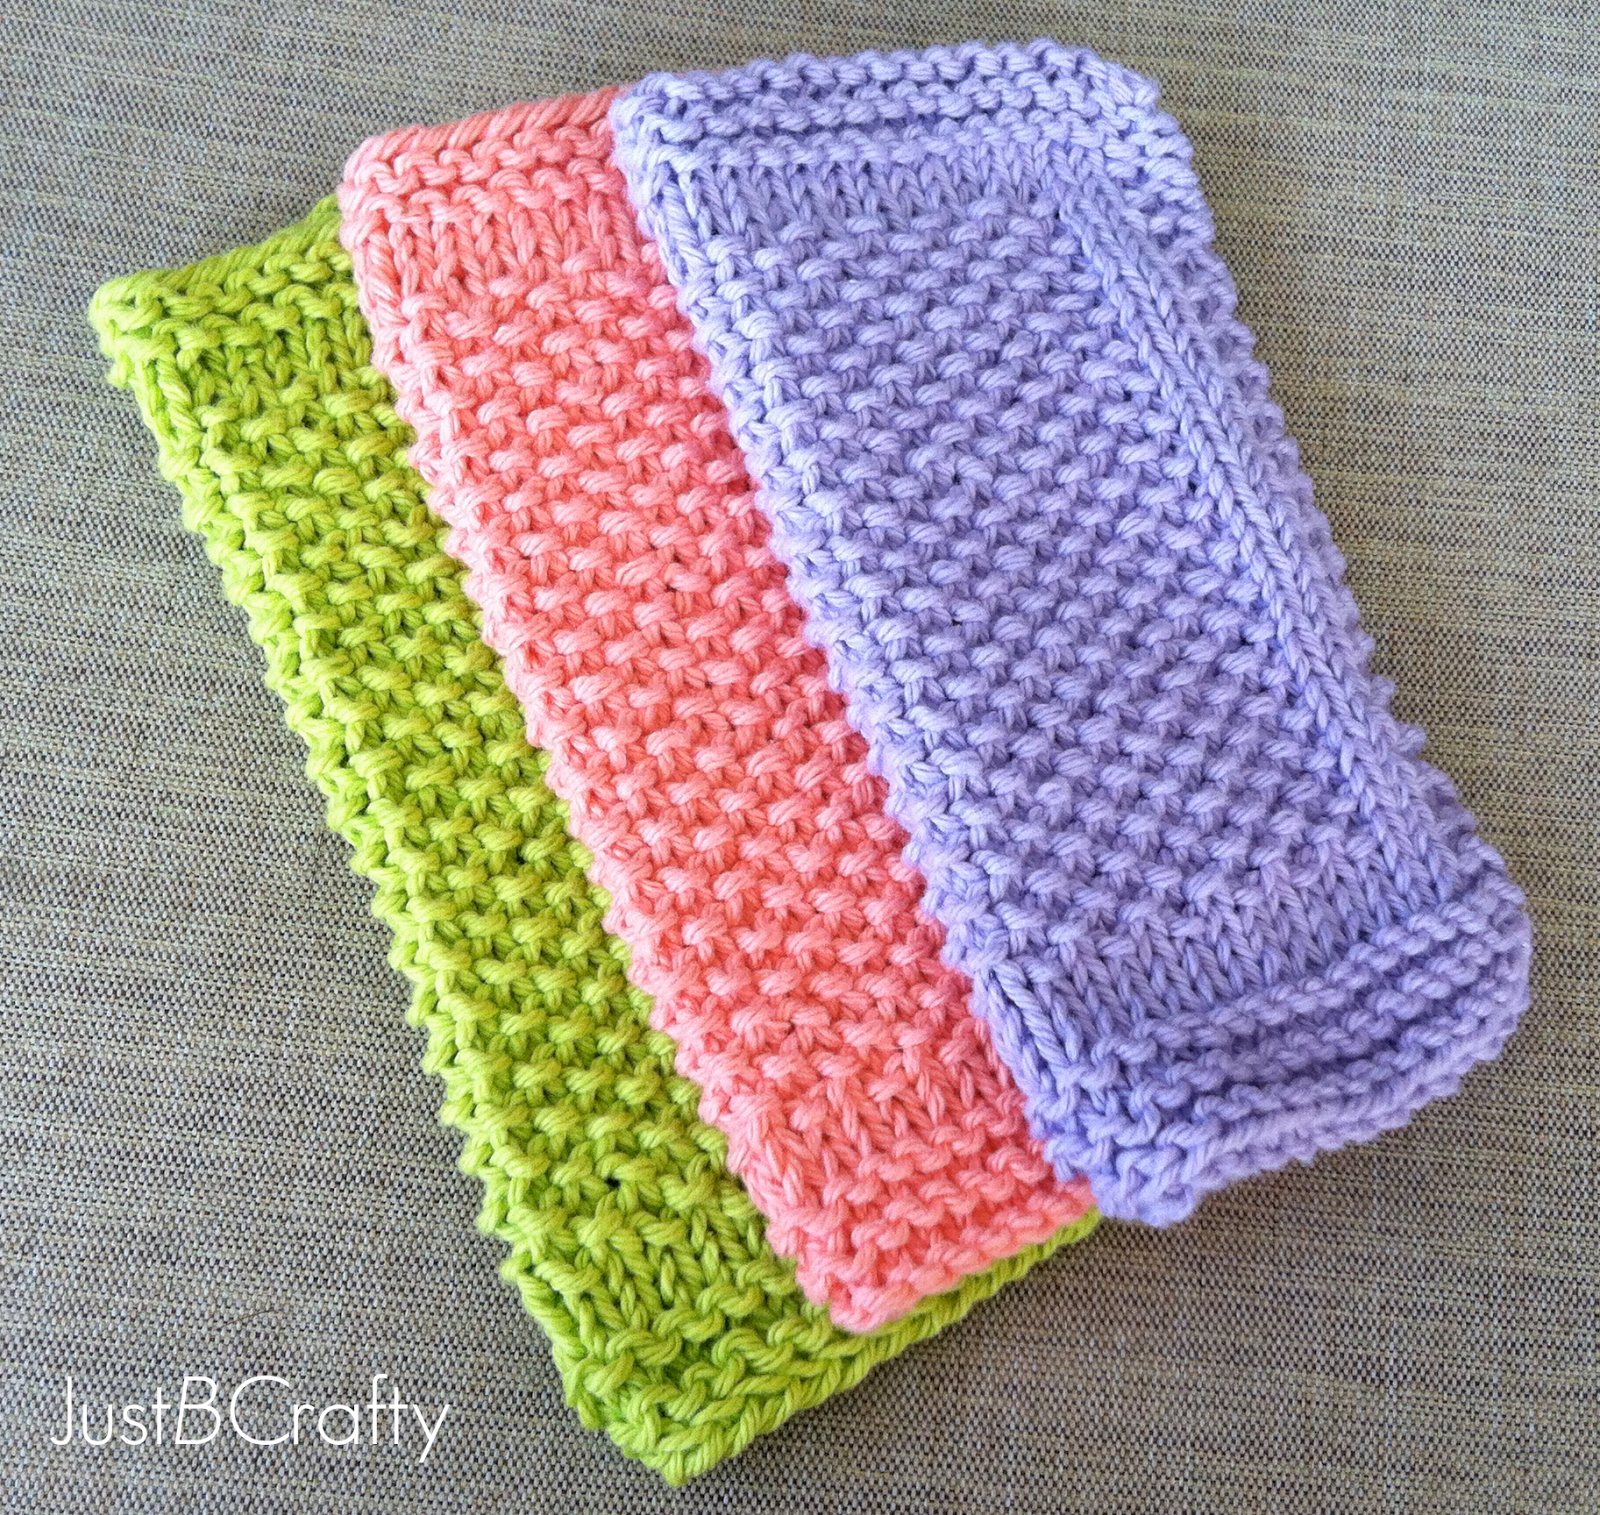 Seed Stitch Dishcloths - Just Be Crafty